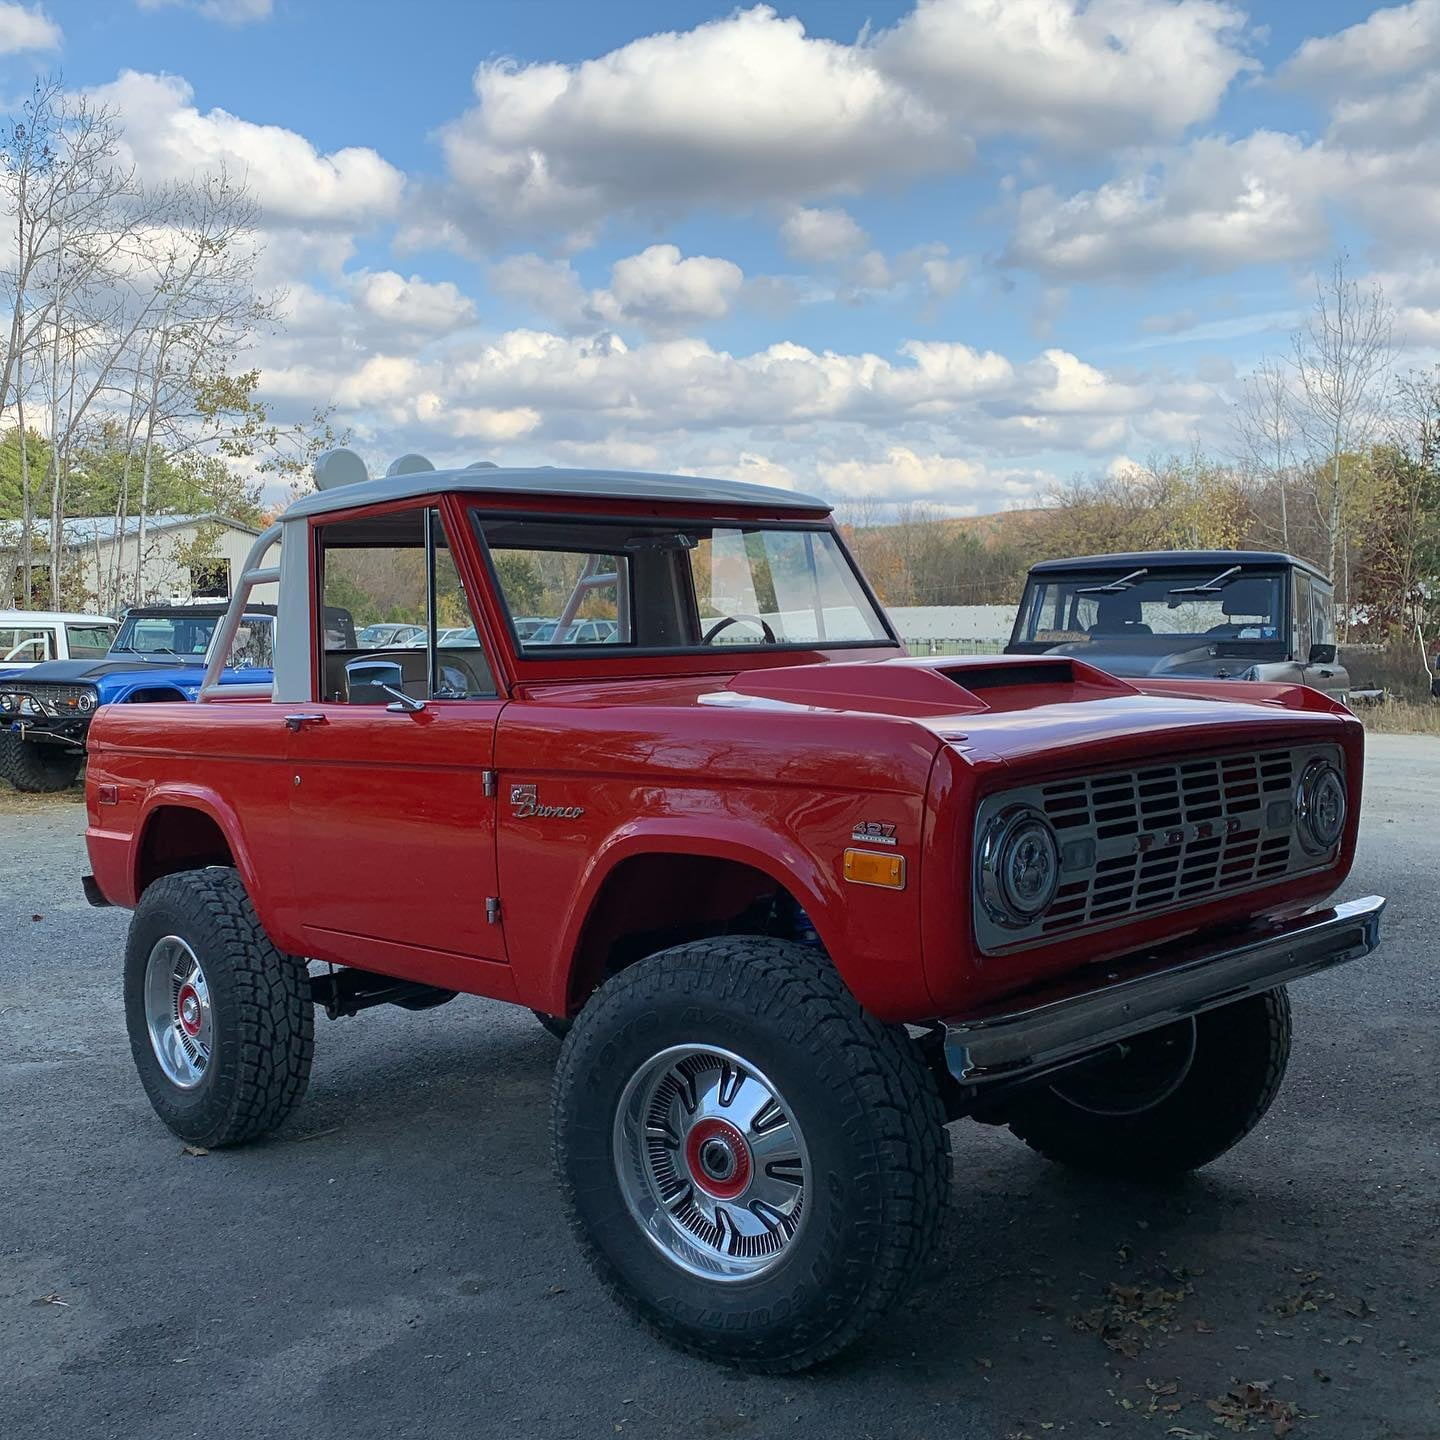 LAL-Customs-Ford-Bronco-Restoration-T-Man-Build-10